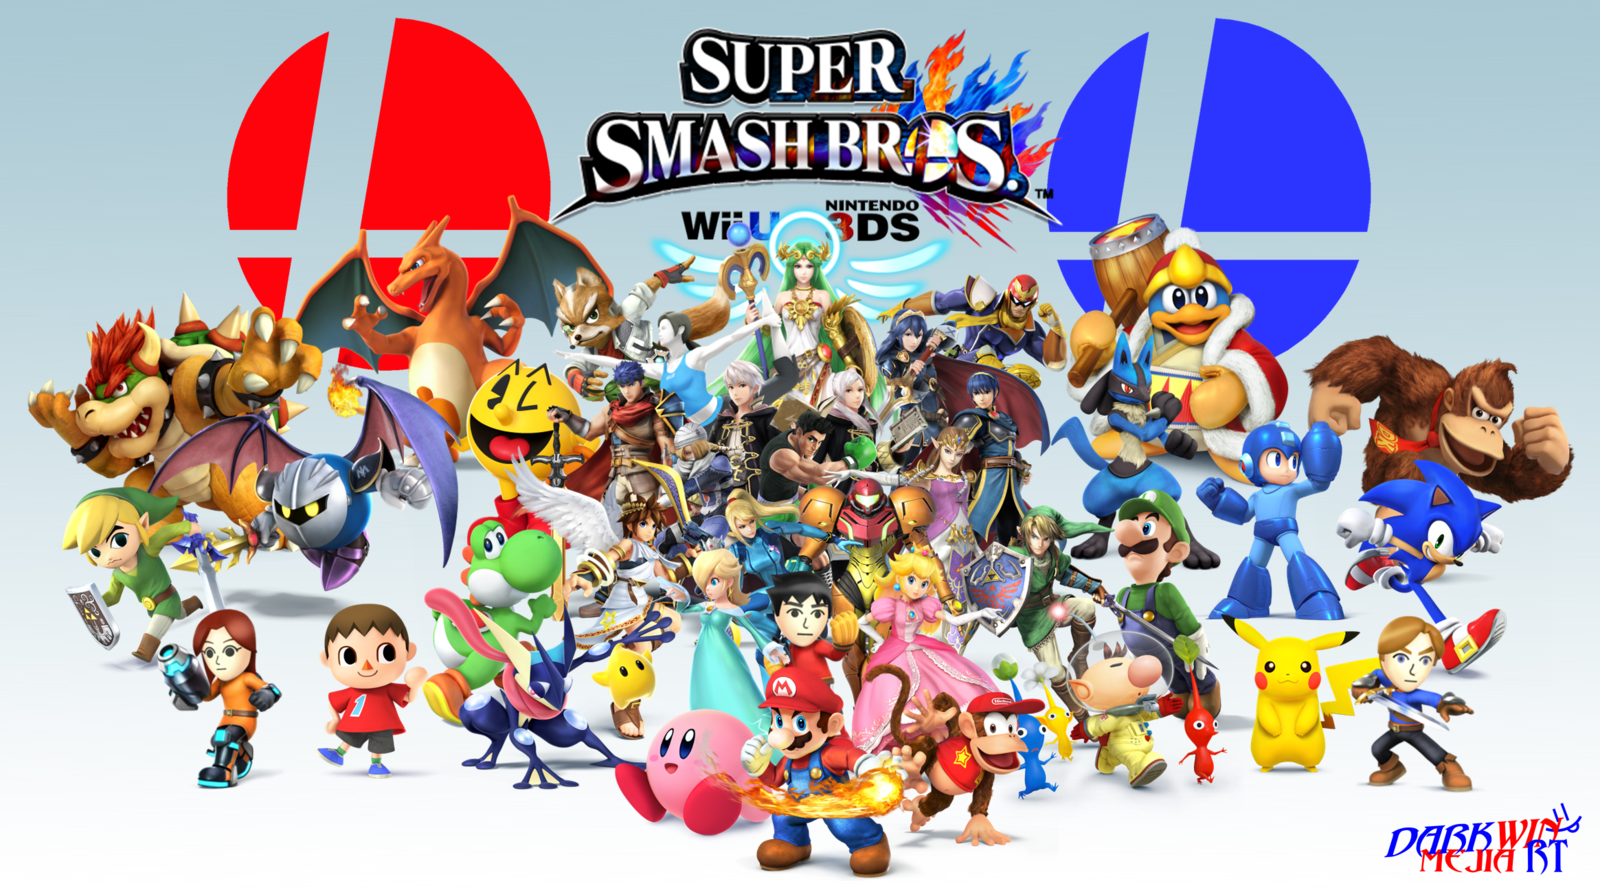 Super smash bros wii u wallpaper